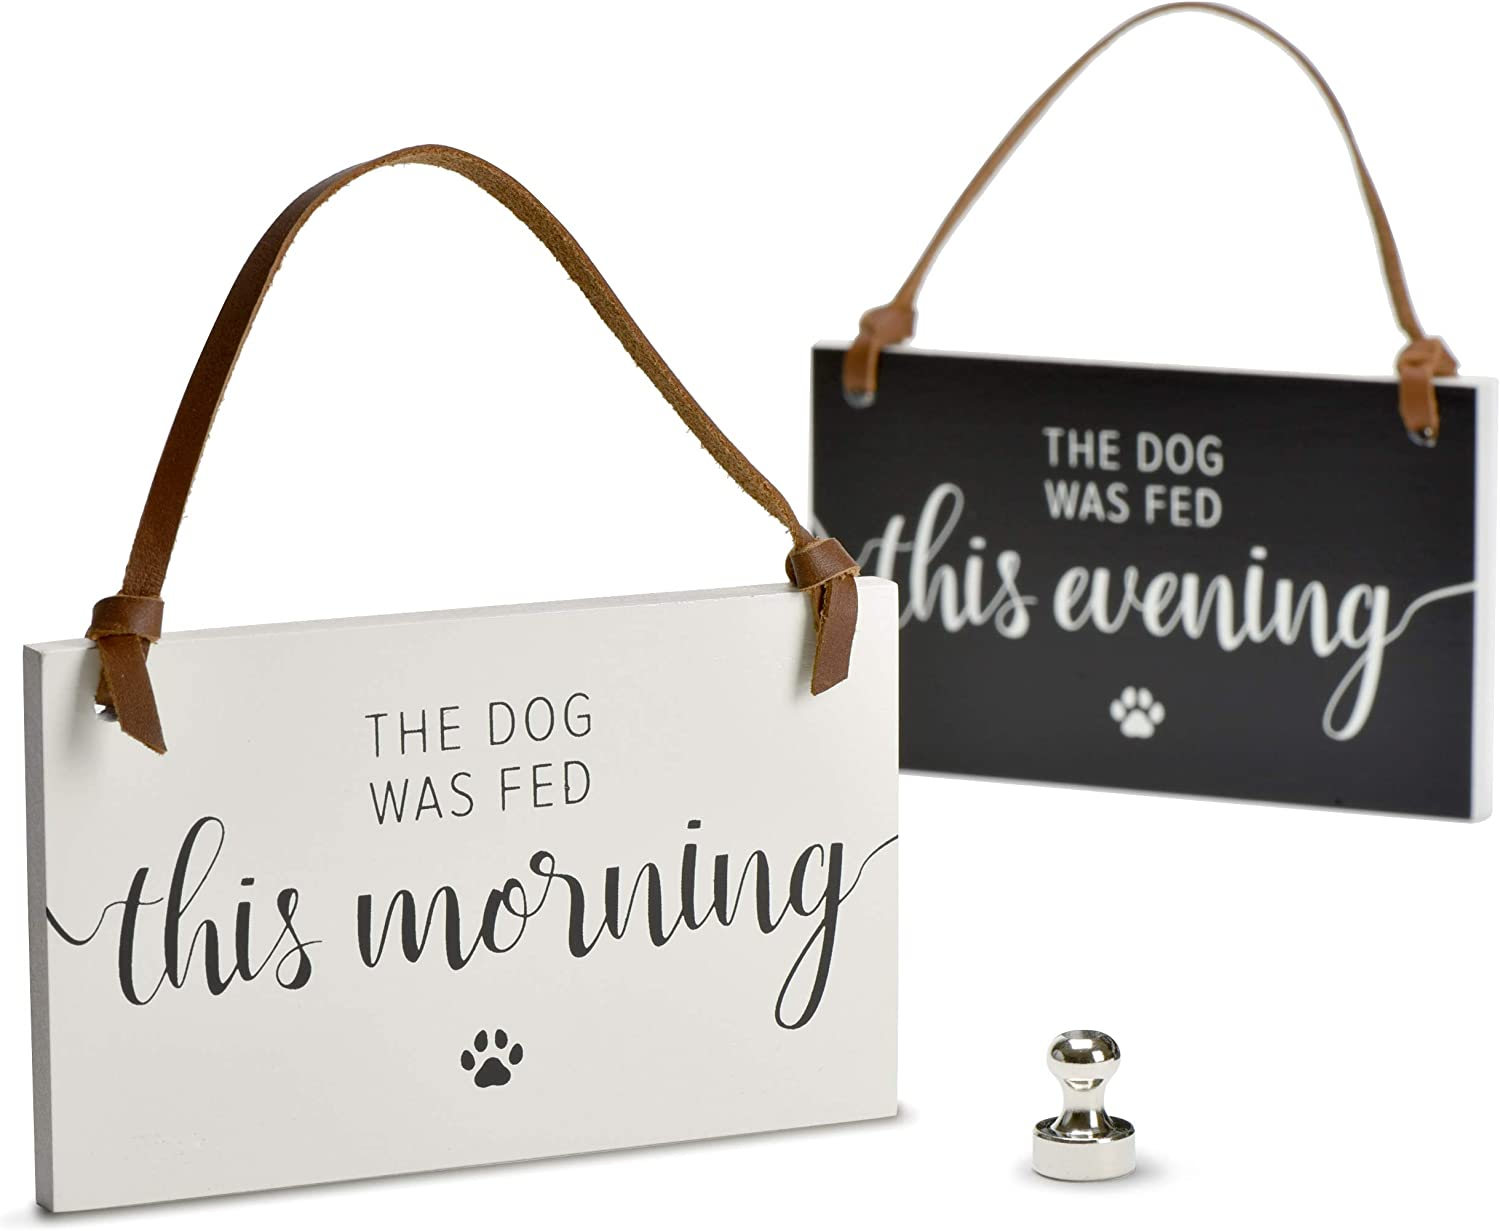 PYROH Dog Feed Reminder - Wooden Dog Feeding Schedule - Feed Dog Magnet Sign - Did You Feed The Dog - AM/PM Indicator to Replace Dog Feeding Chart